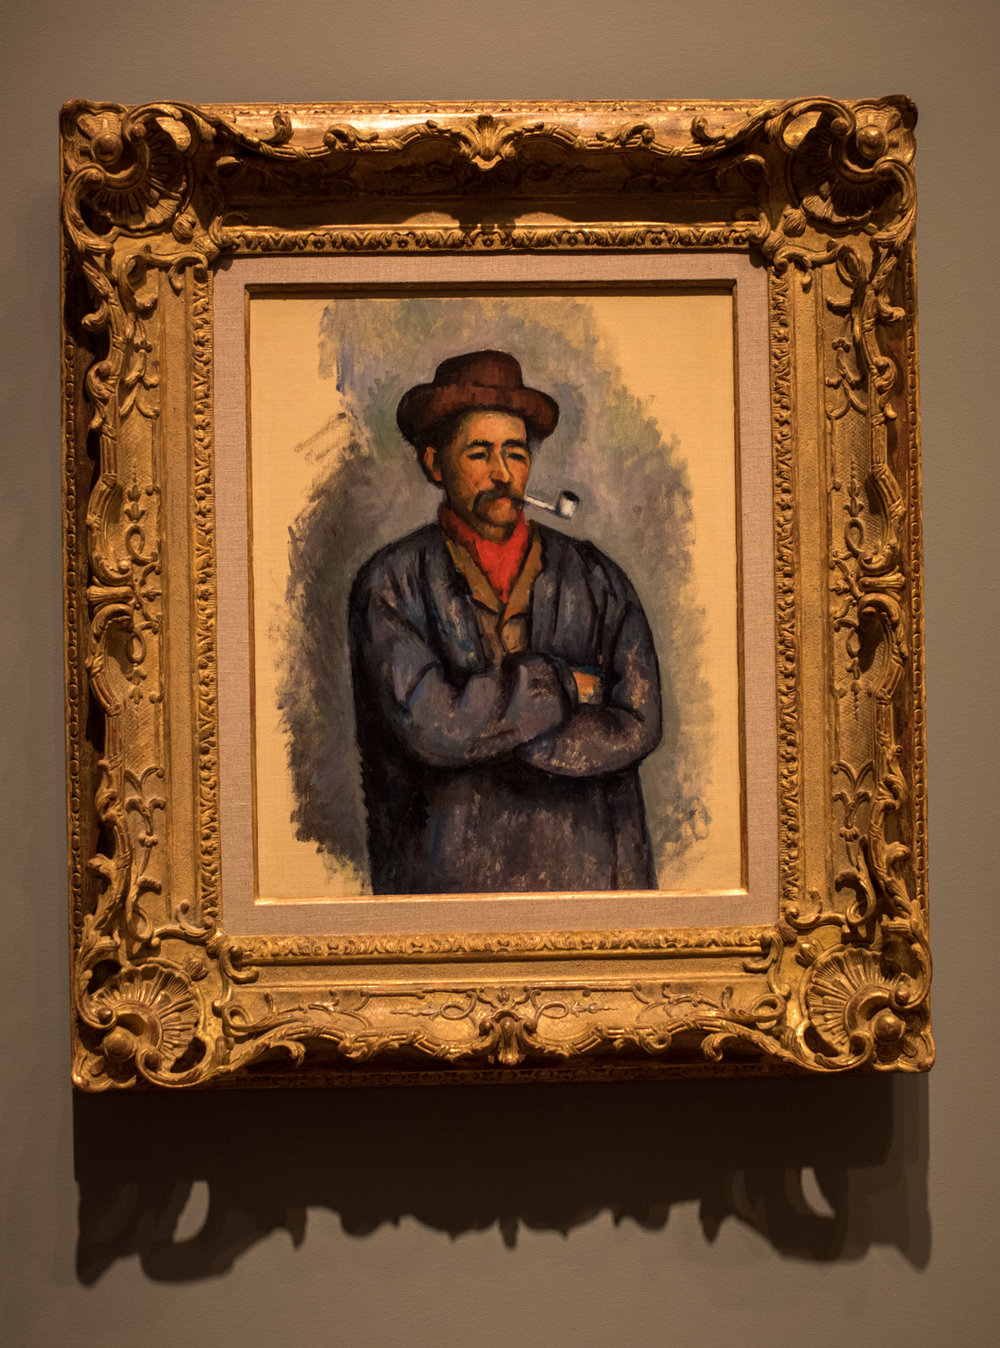 "Man with a Pipe,  1890-1892 by Paul Cézanne (1839-1906), oil on canvas.  The artist wrote' ""I love above all else the appearance of people who have grown old without breaking with old customs.""  This painting is one of a group of studies related to  The Card Players,  one of Cézanne's most important pictorial projects.  The local workers reminded him of qualities he admired - steadfast, unchanging, and monumental."